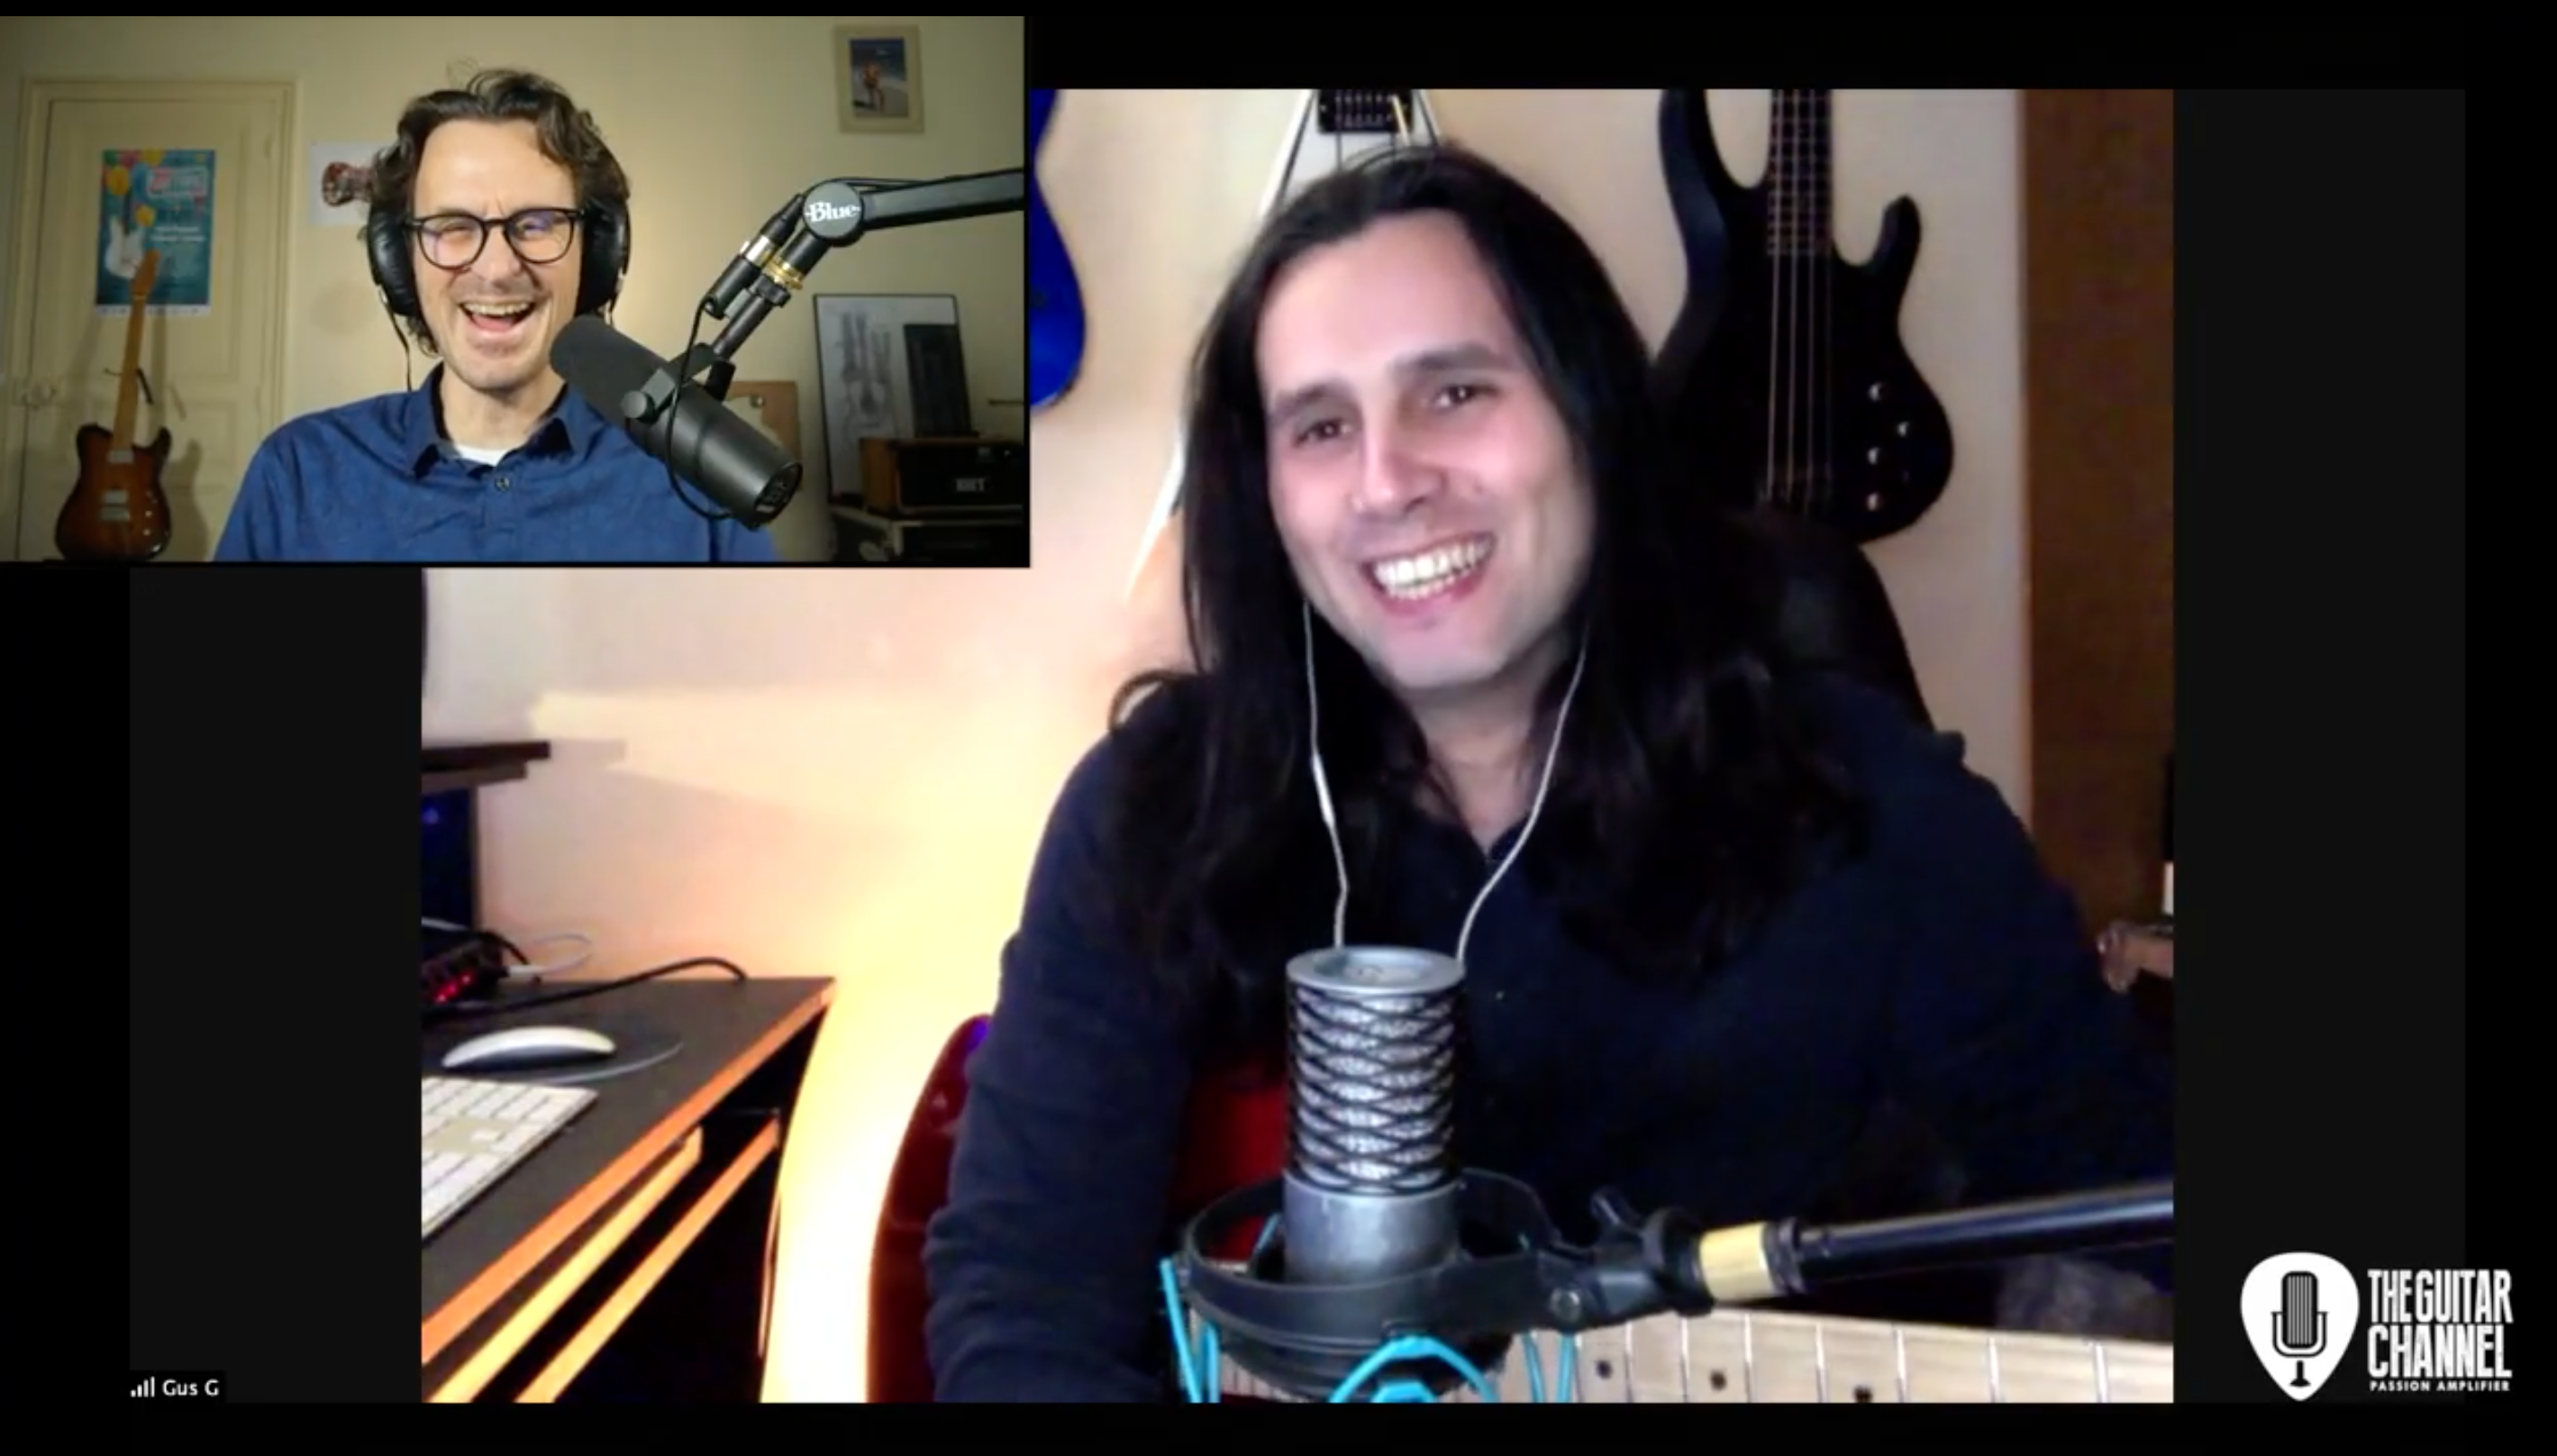 Gus G talks about his Blackfire pickups and let you win a set!